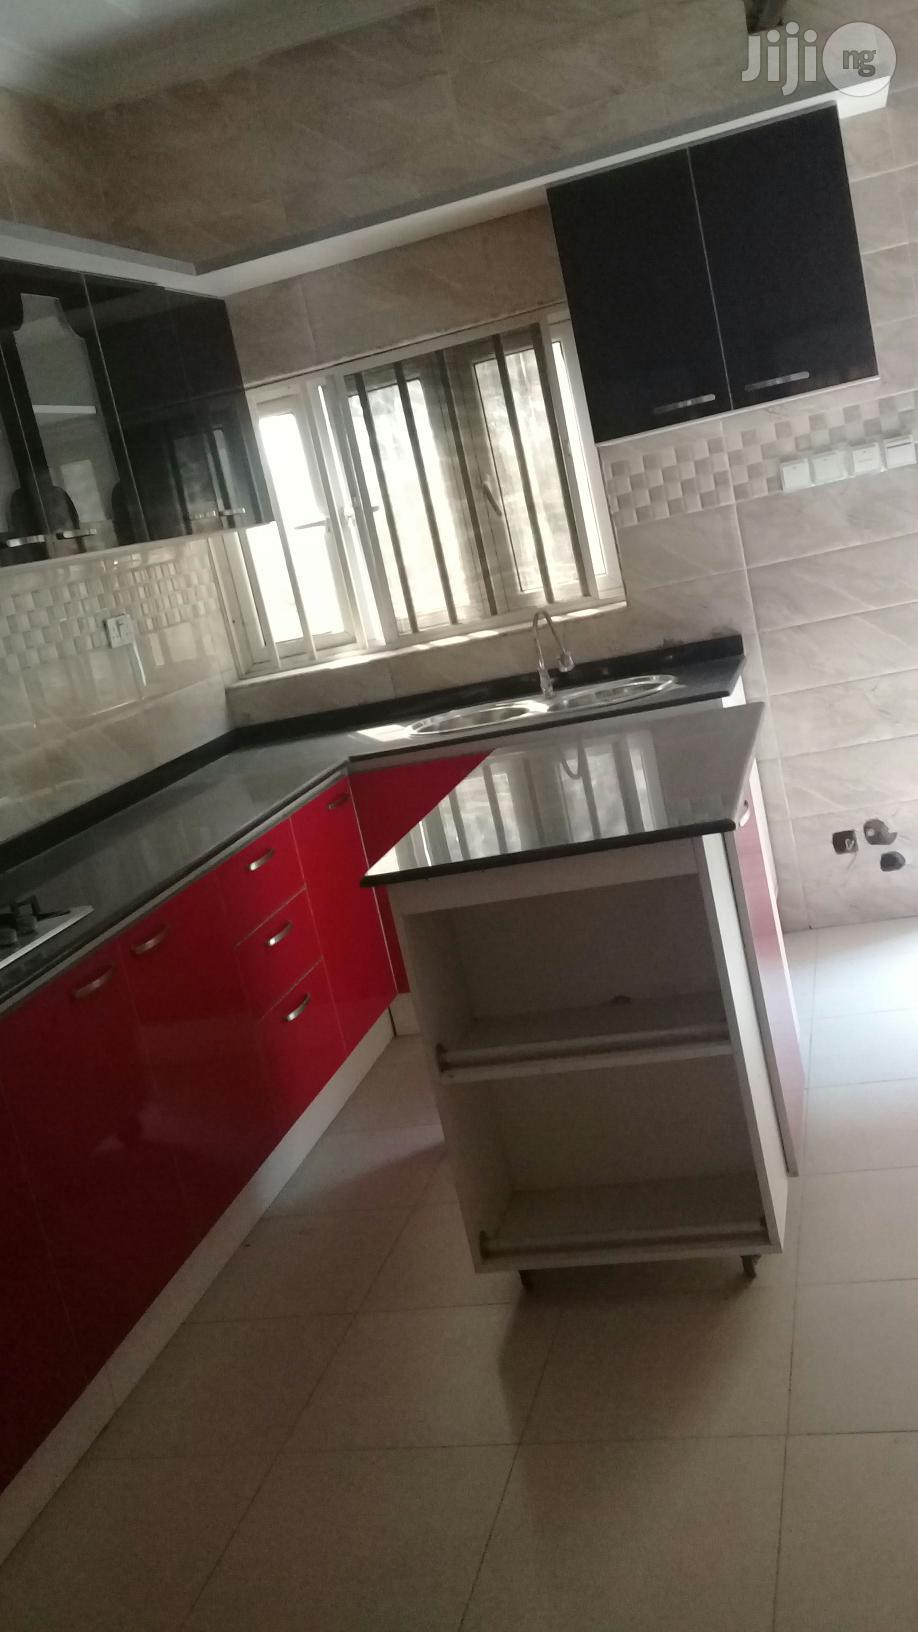 4 Bedrooms Duplex for Sale Lekki   Houses & Apartments For Sale for sale in Lekki, Lagos State, Nigeria